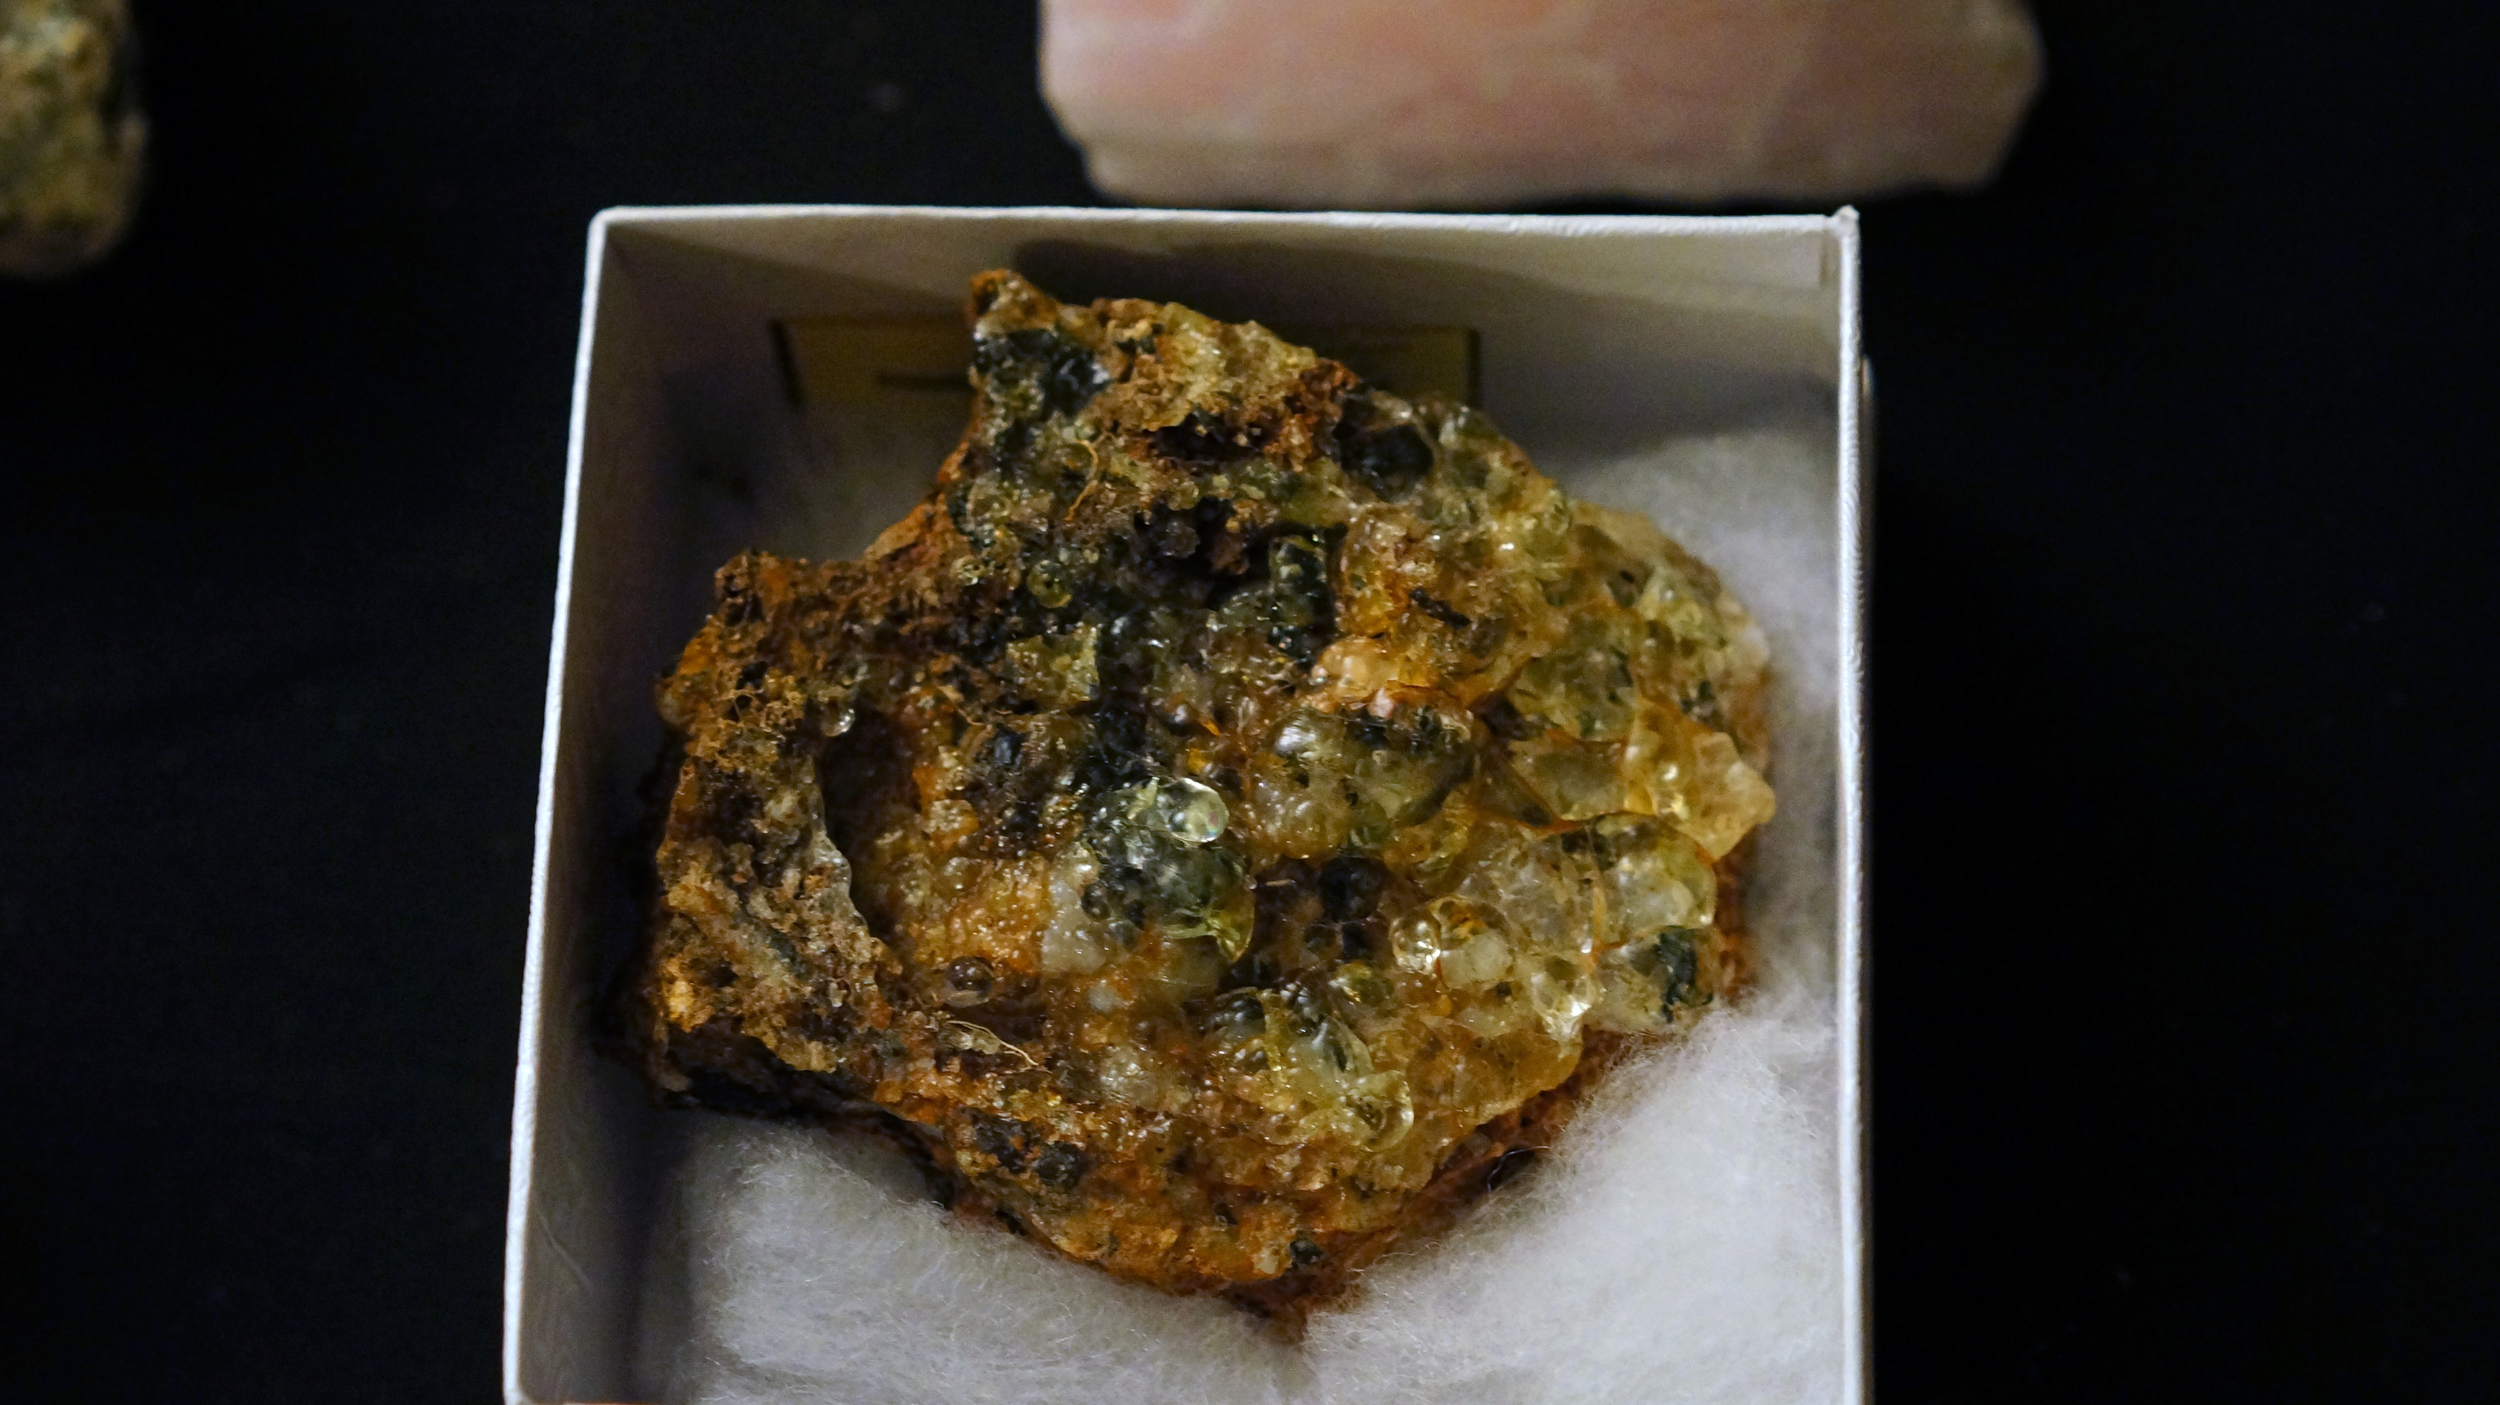 A piece of that gemmy daylight fluorescing hyalite from Zacatecas, Mexico. I would love some but it's way too expensive for my blood!